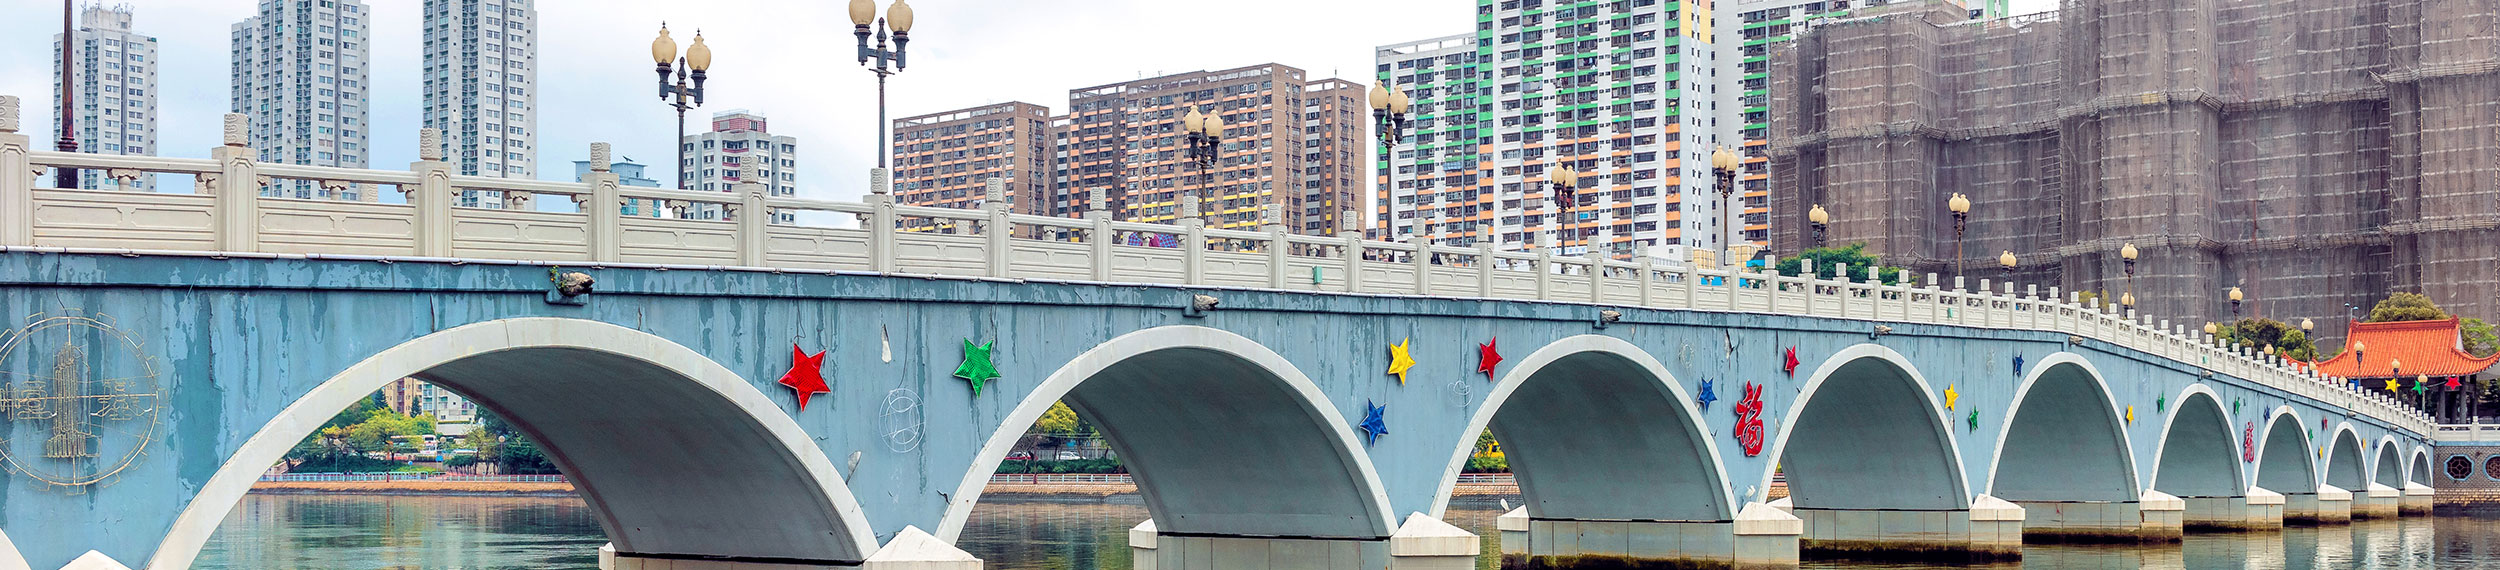 Colorful bridge with residential district of Sha Tin, Hong Kong in the background.